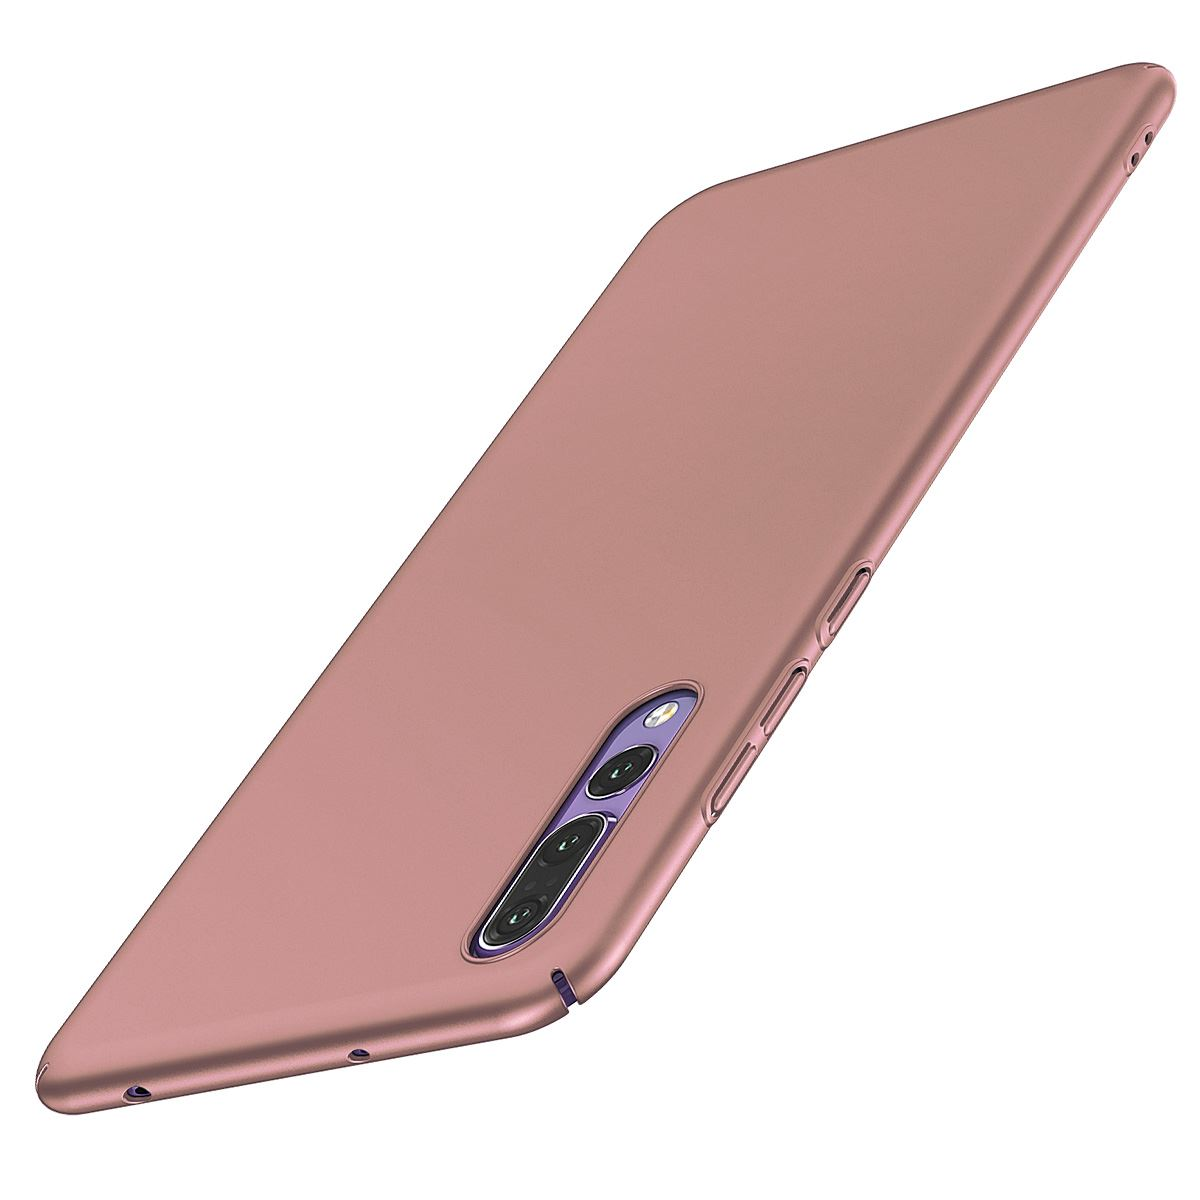 Luxury-Protective-Slim-Thin-Hard-Back-Case-Cover-For-Huawei-P20-Pro-P10-P-Smart thumbnail 39